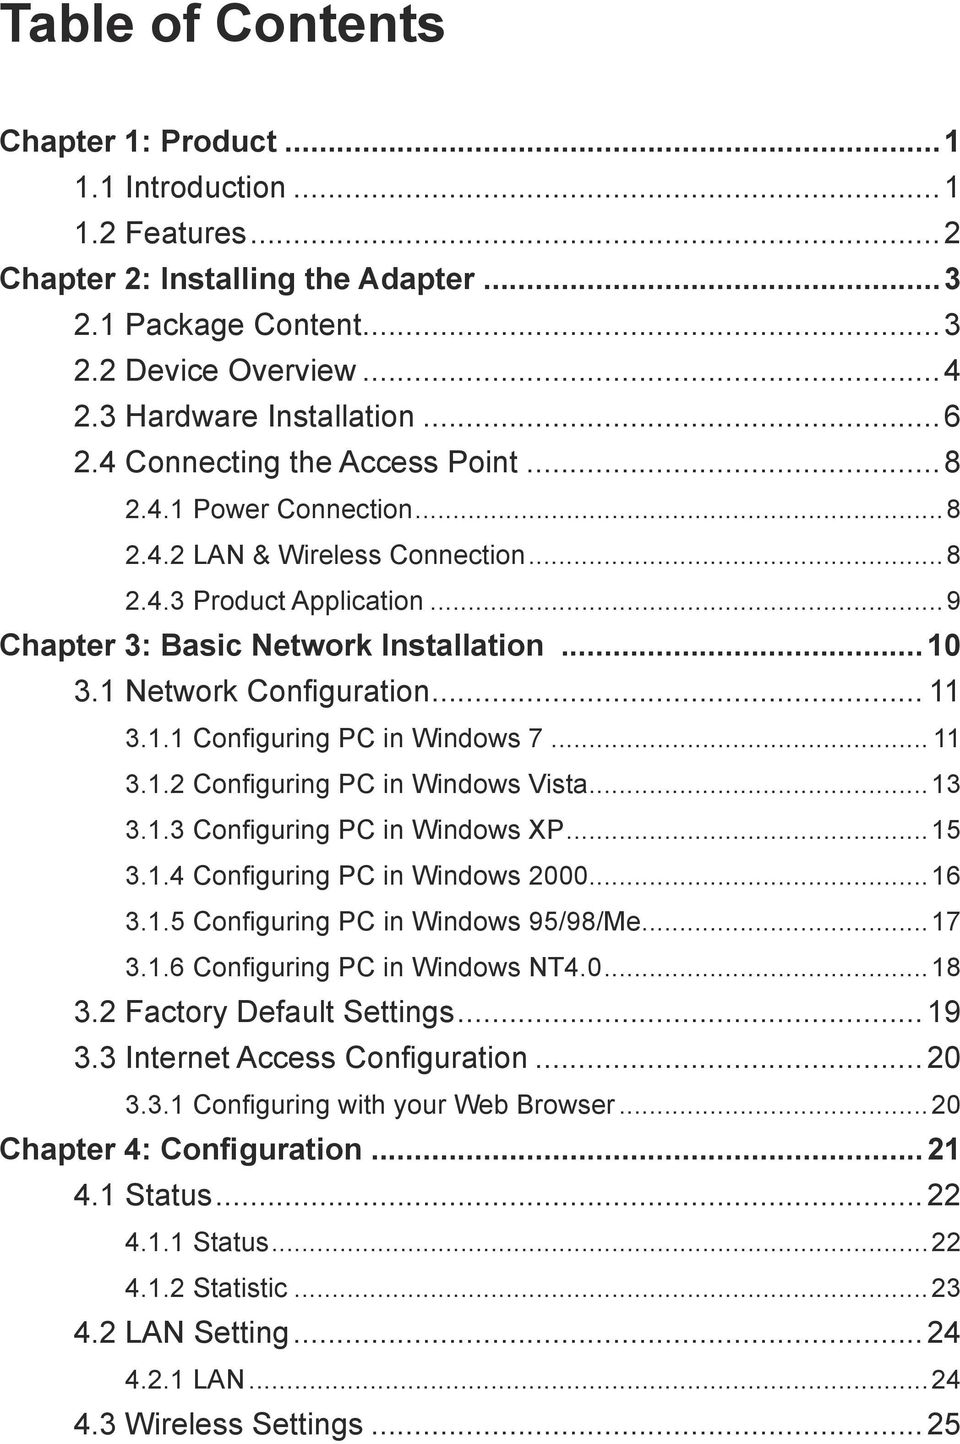 .. 11 3.1.1 Configuring PC in Windows 7... 11 3.1.2 Configuring PC in Windows Vista...13 3.1.3 Configuring PC in Windows XP...15 3.1.4 Configuring PC in Windows 2000...16 3.1.5 Configuring PC in Windows 95/98/Me.